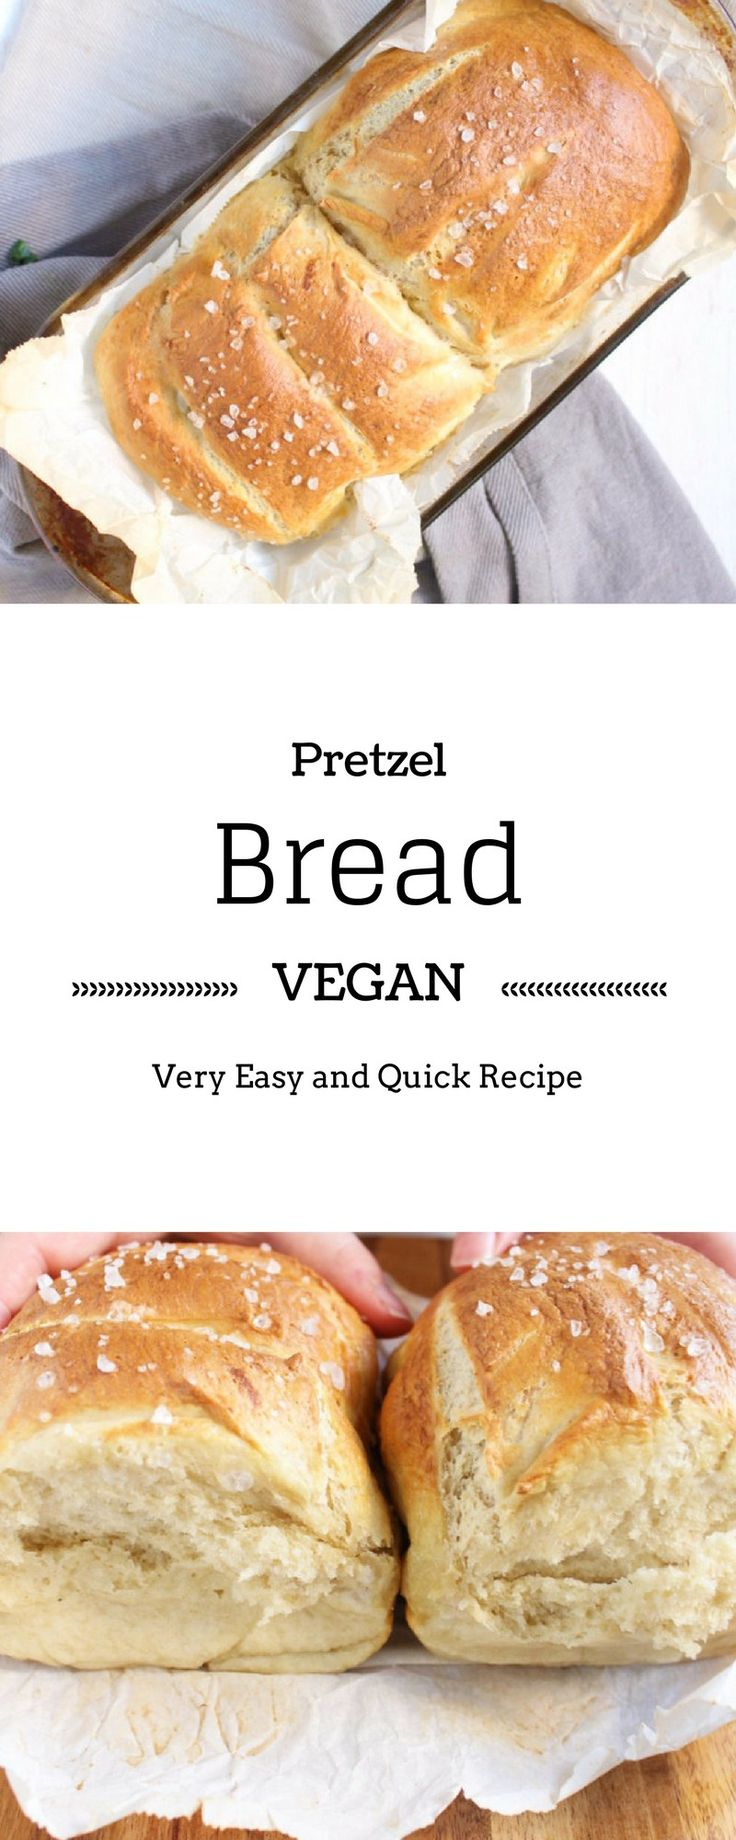 Vegan Pretzel Bread   Go from pretzels to pretzel bread with this awesome very easy and vegan recipe.  Brokefoodies.com